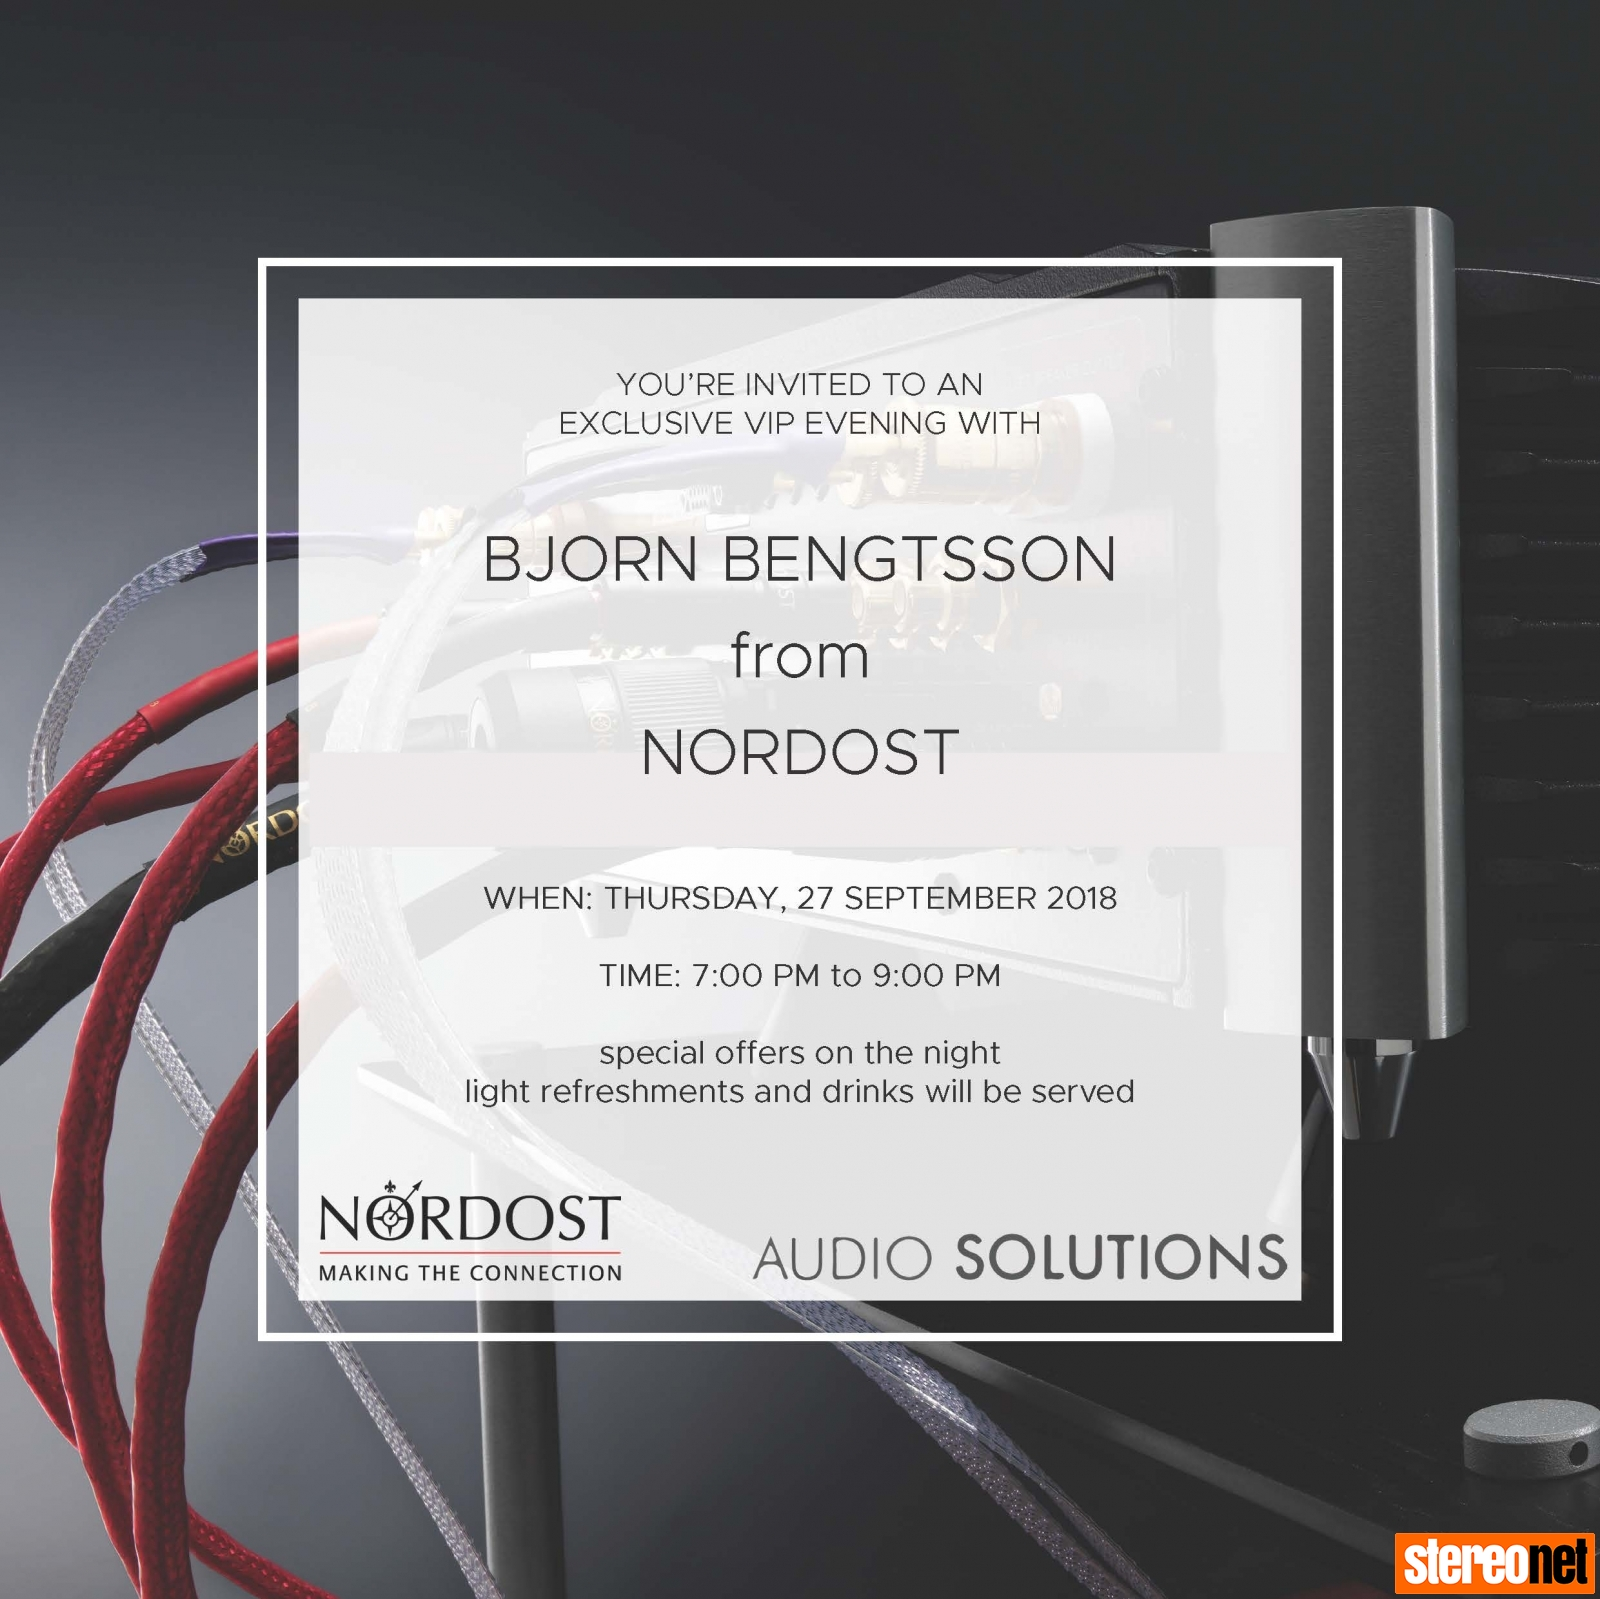 Nordost at Audio Solutions